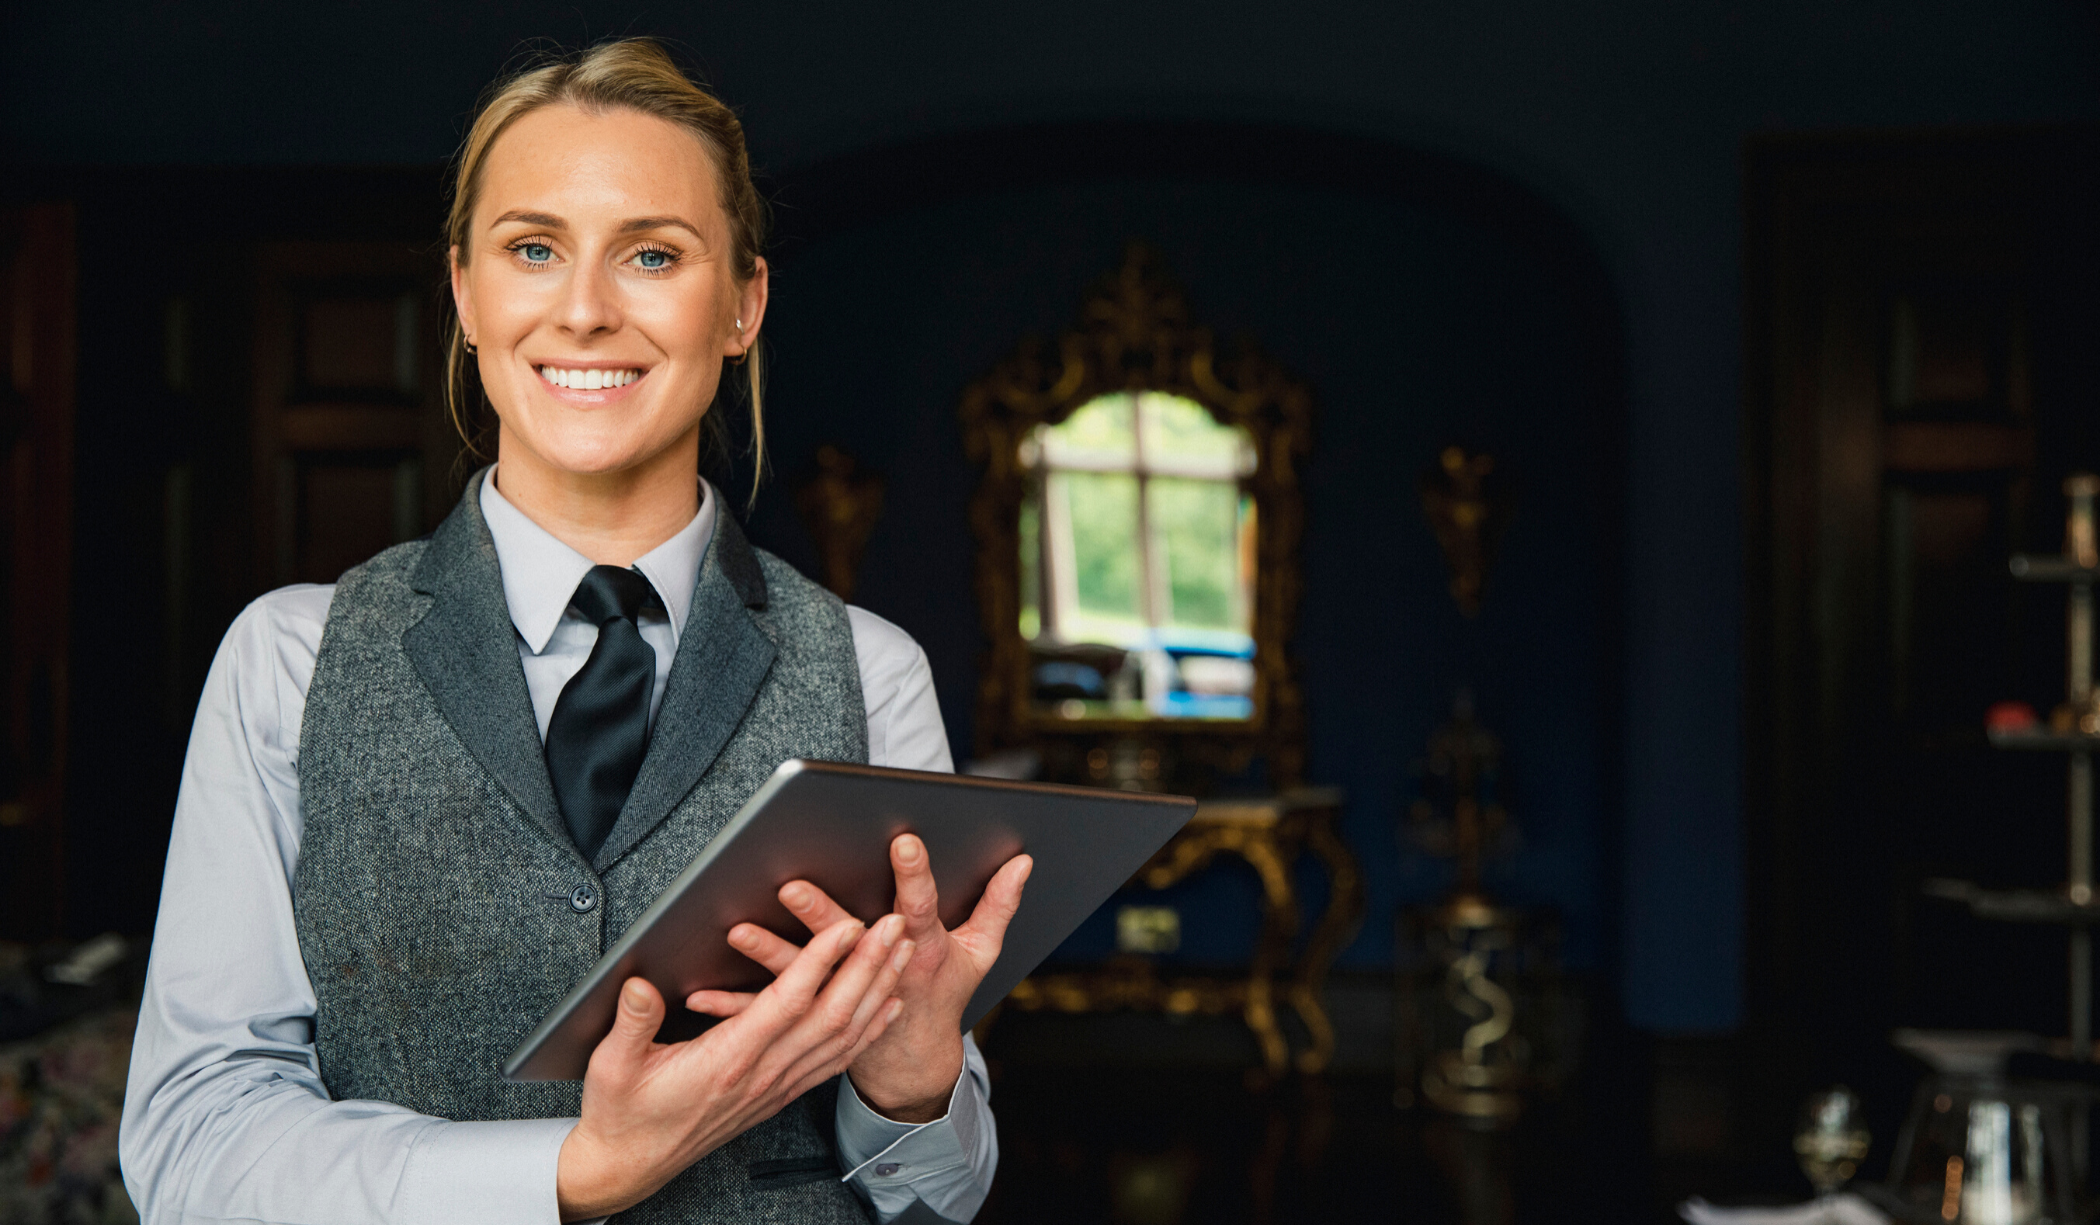 Dealing with Hotel Staff Turnover? Tech Can Help